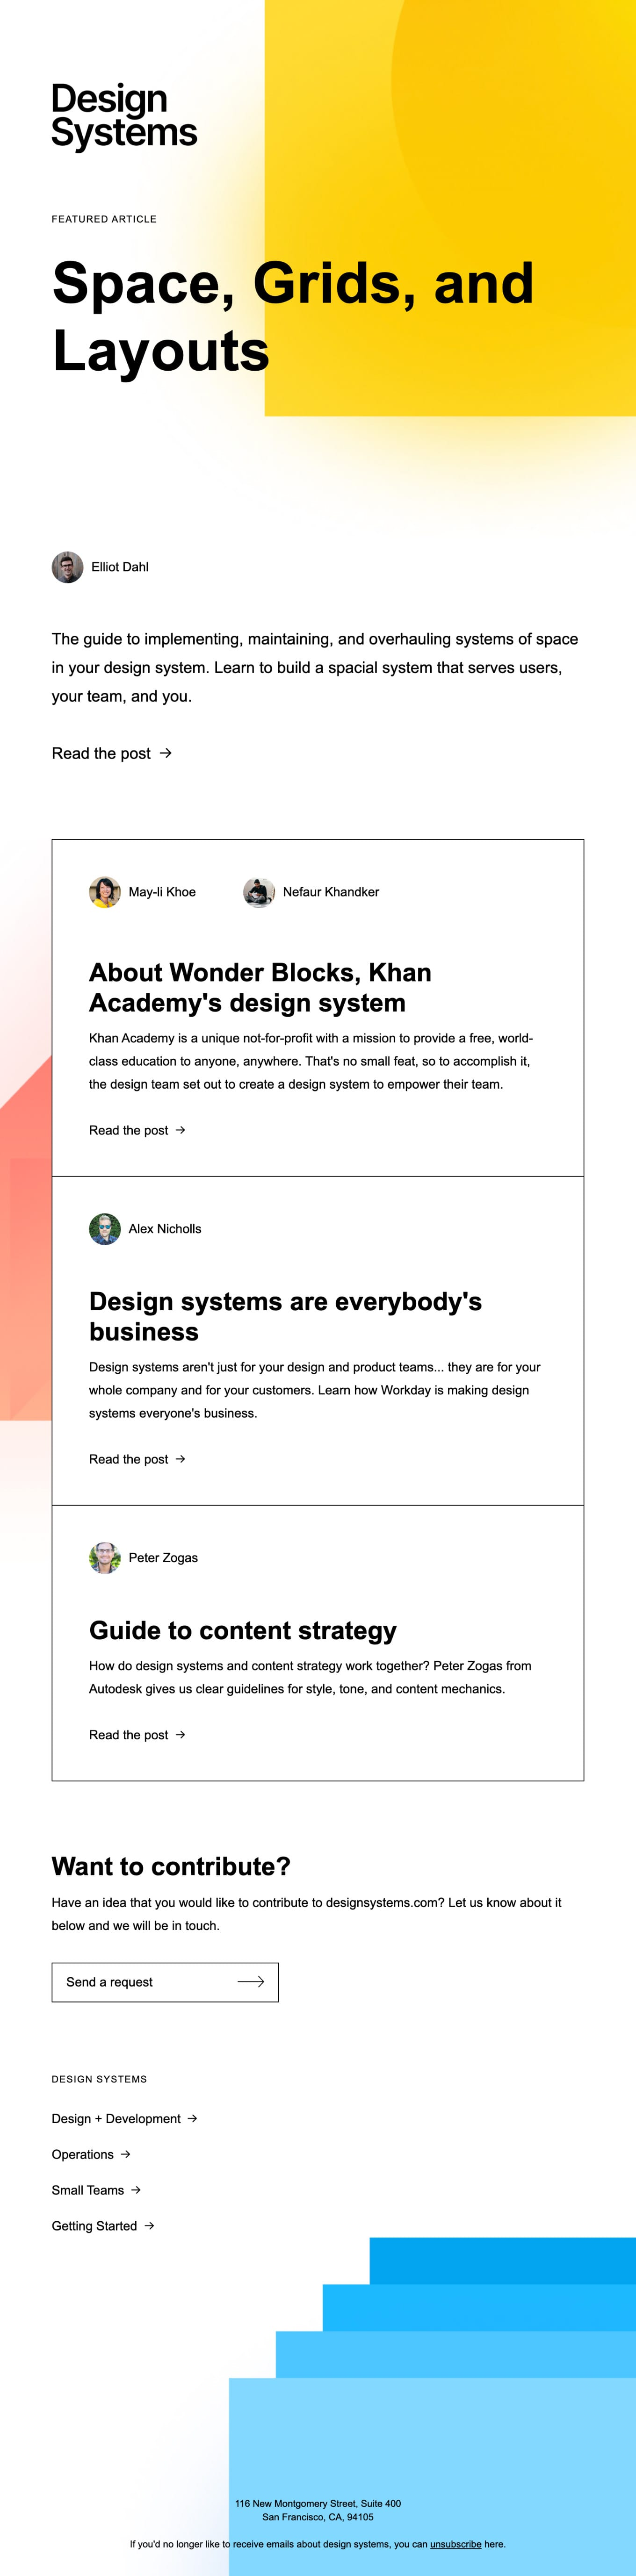 Learn from design leaders at Khan Academy, Lattice, Workday, & more Email Screenshot